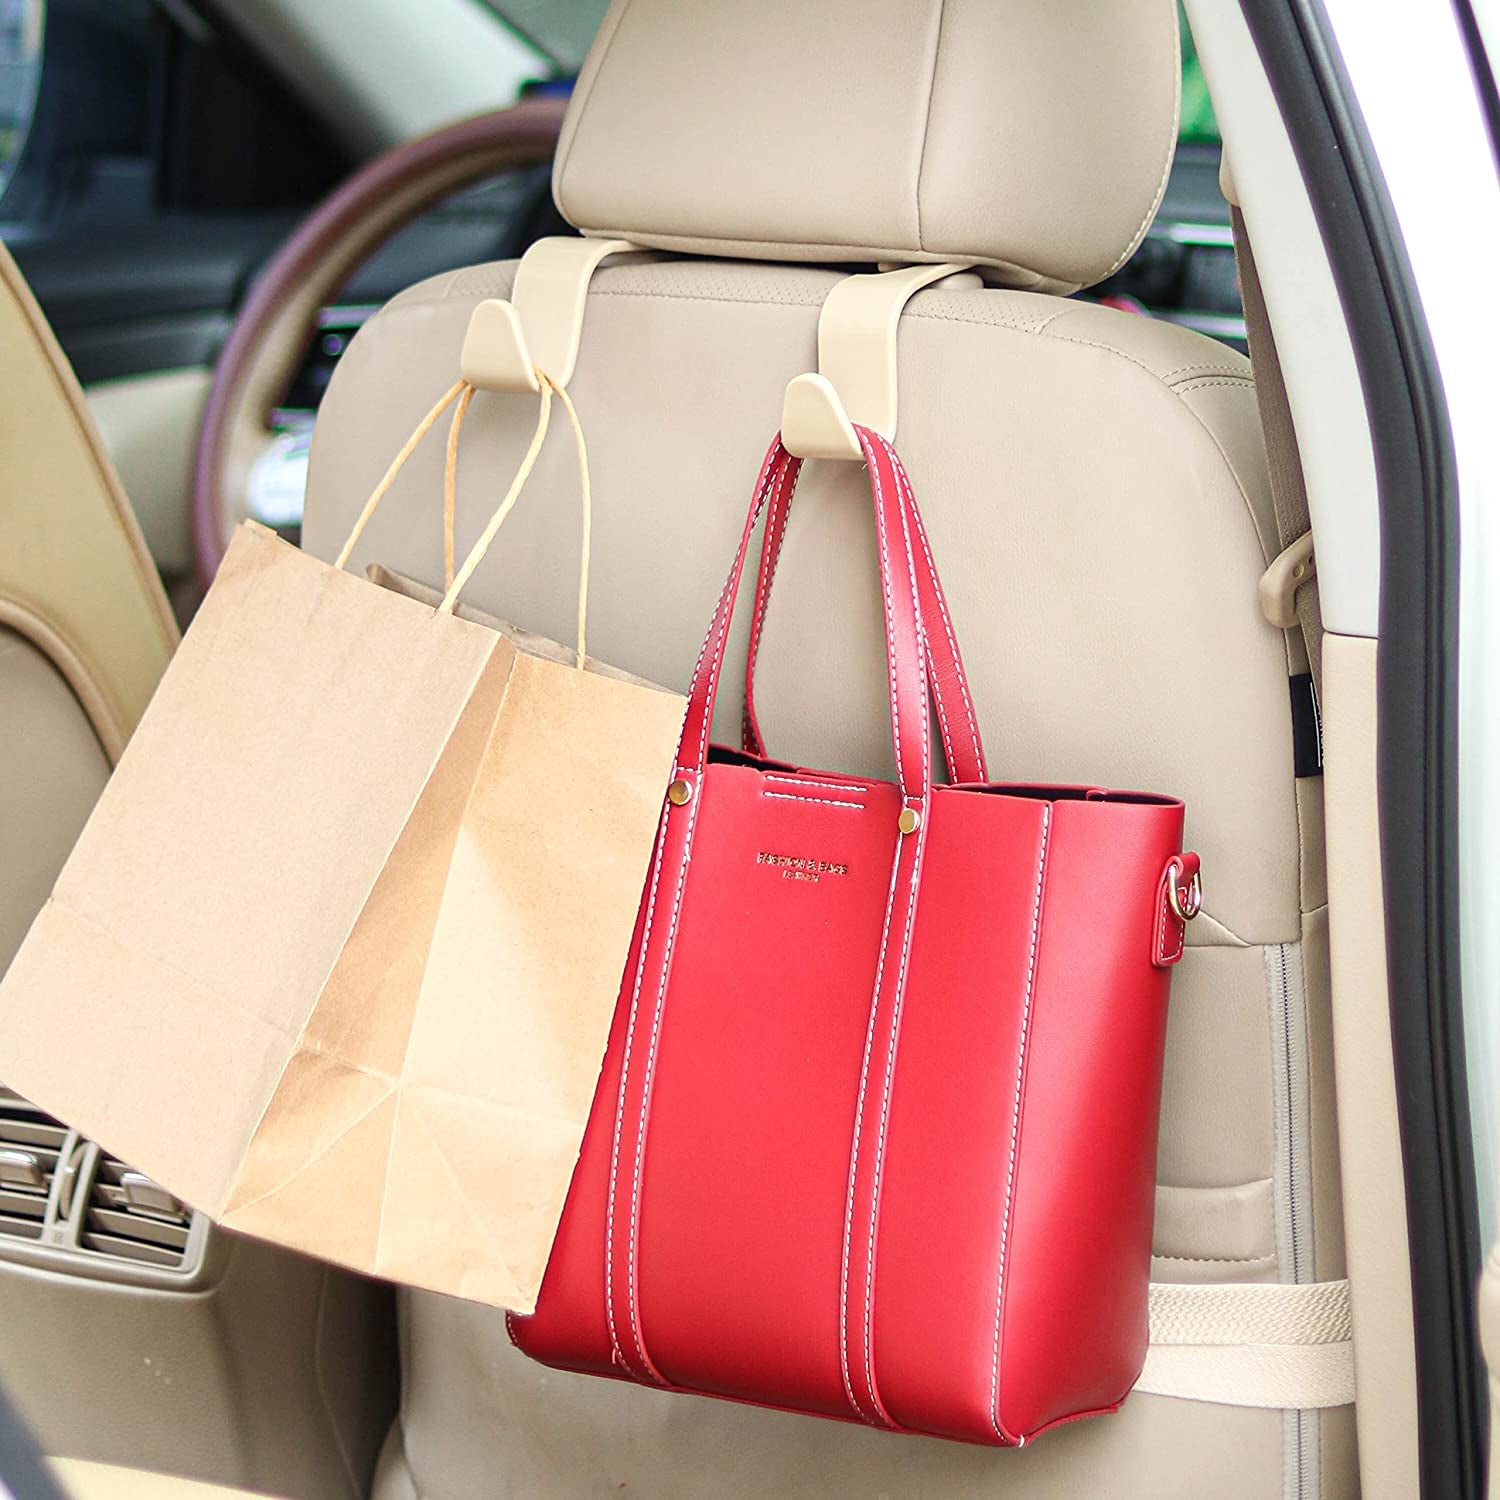 beige car seat headrest hook holding up a brown bag and red tote bag